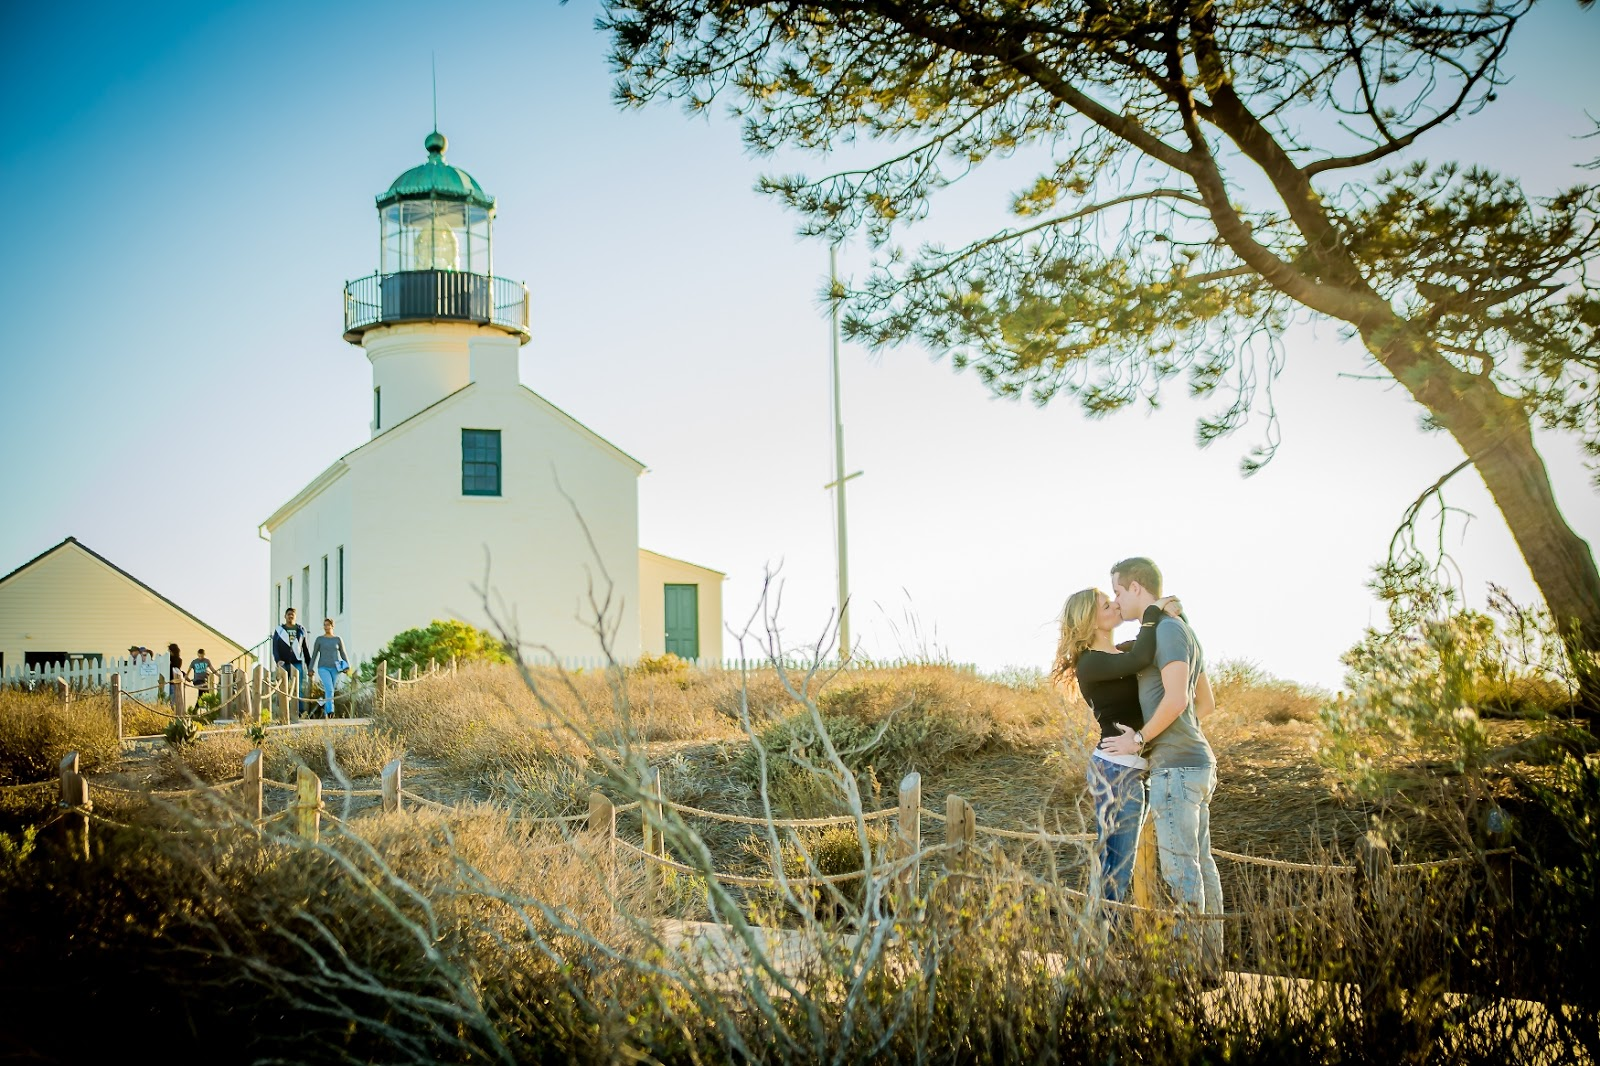 They Chose Cabrillo Monument For Their Engagement Photo Session Because Got Engaged There On A Warm 80 F November Afternoon The Weekend Before